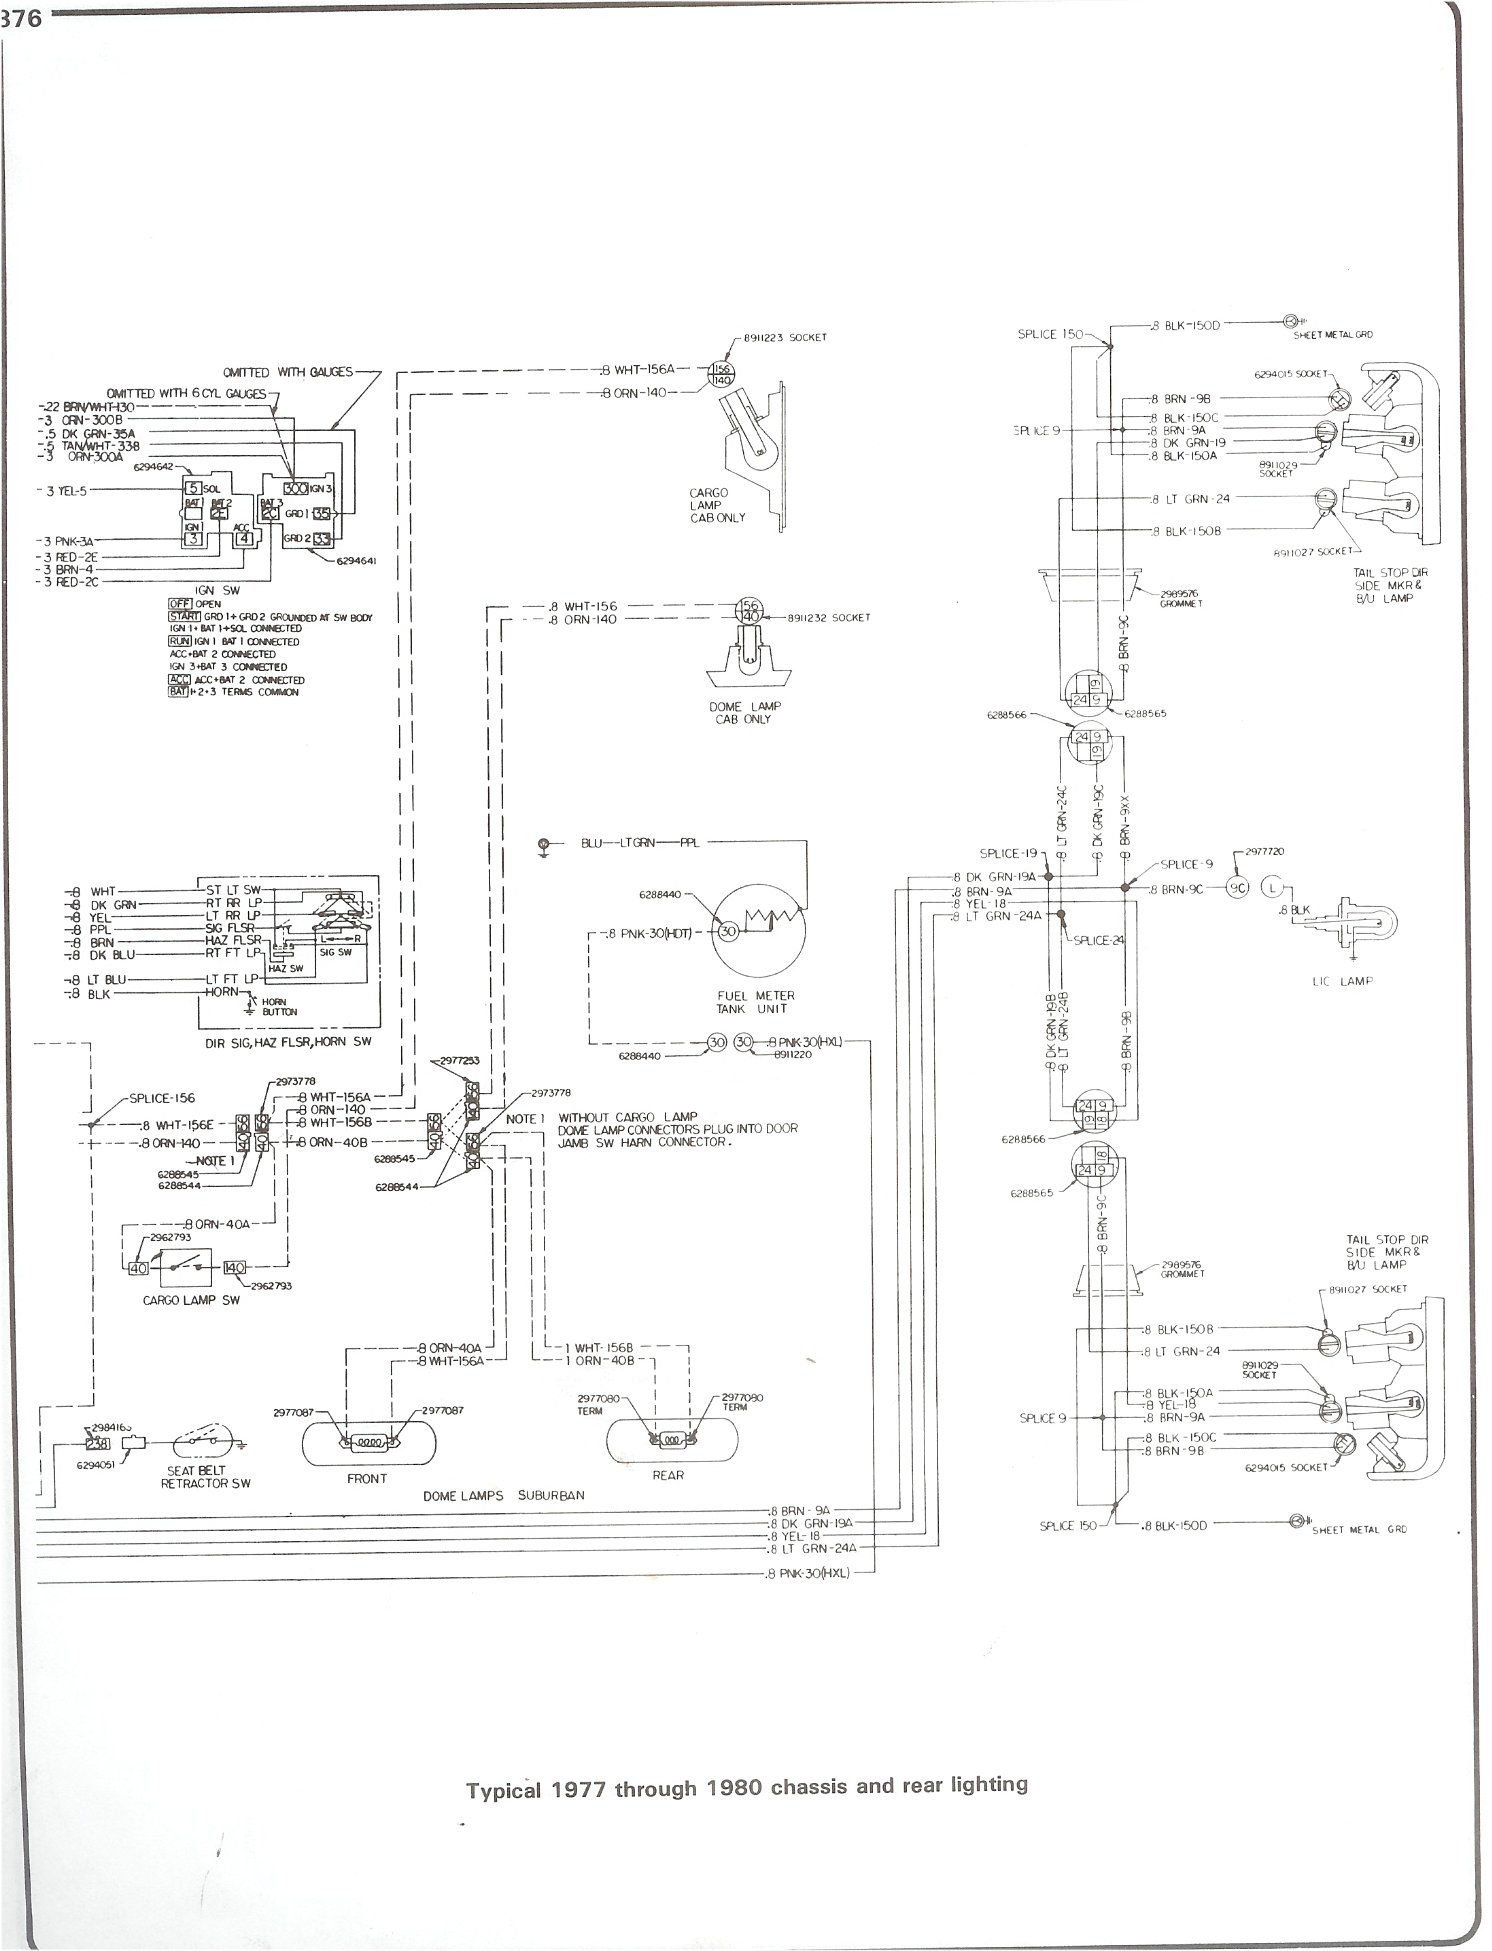 77 80_chass_rr_light complete 73 87 wiring diagrams 1988 chevy truck wiring diagrams at bayanpartner.co